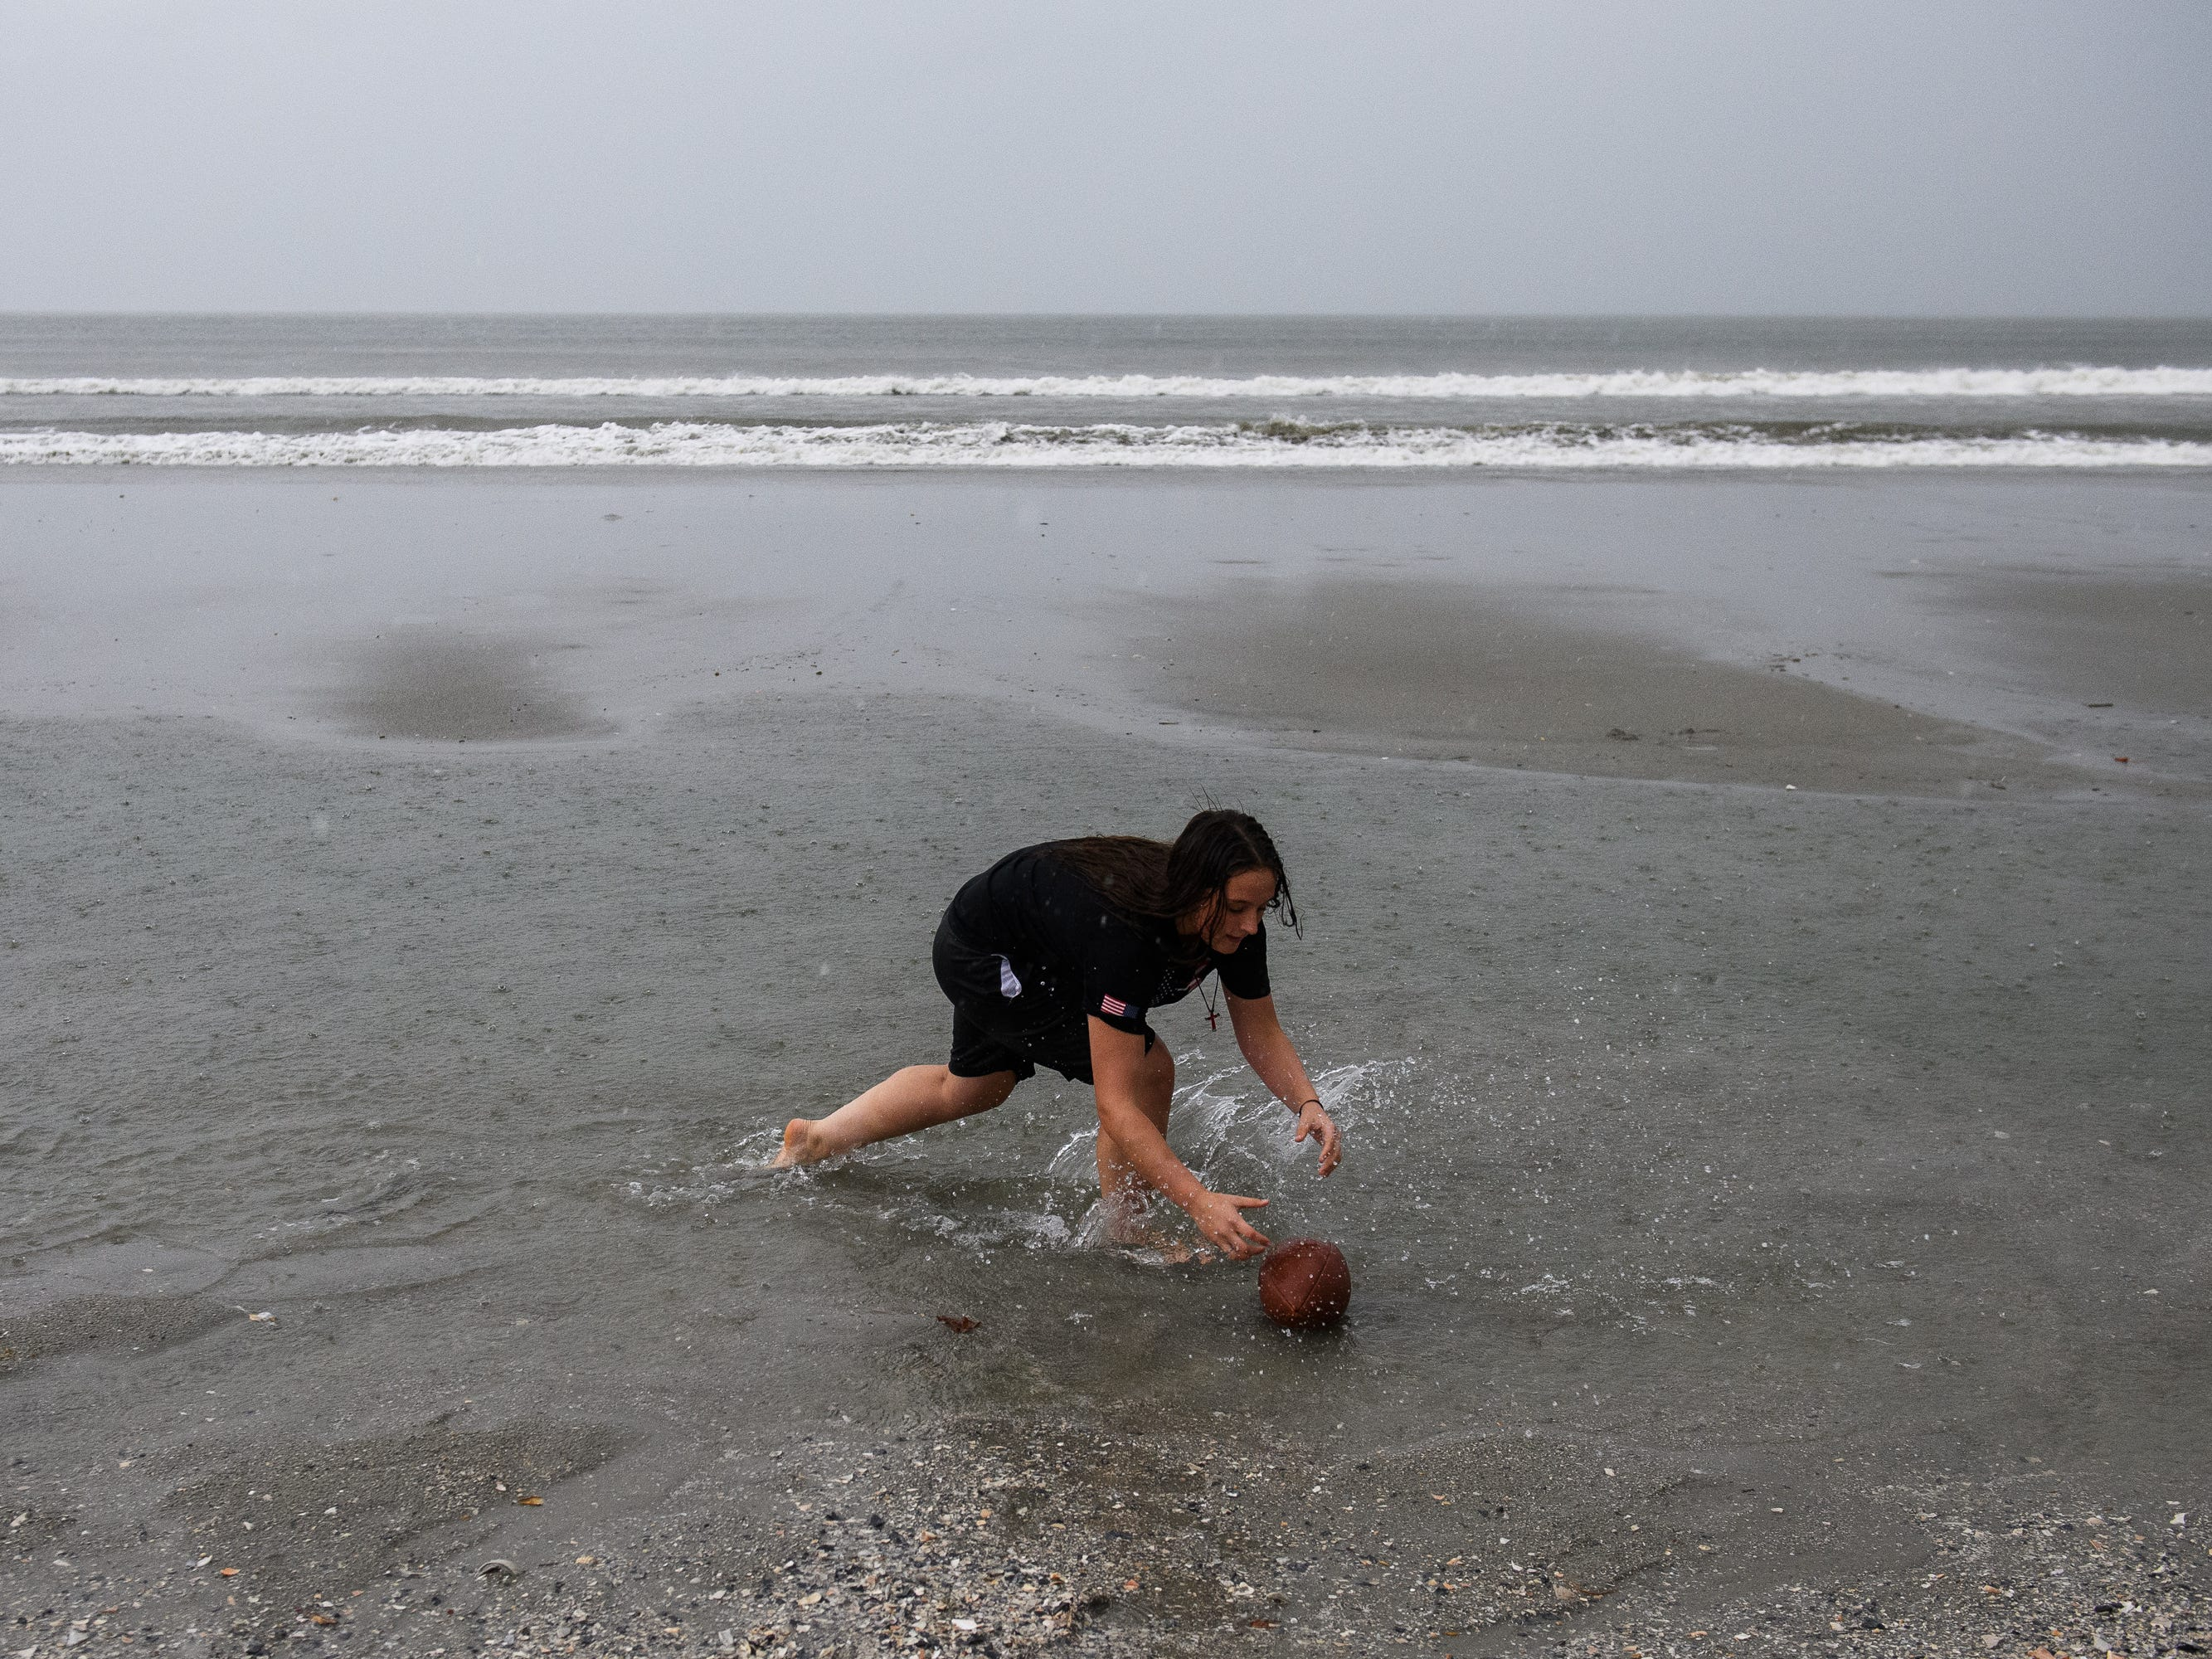 Haleigh Washington, 13, plays catch at Cherry Grove Beach in North Myrtle Beach as the first rain from a stray outer band of Hurricane Florence hits the area on Thursday, Sept. 13, 2018.